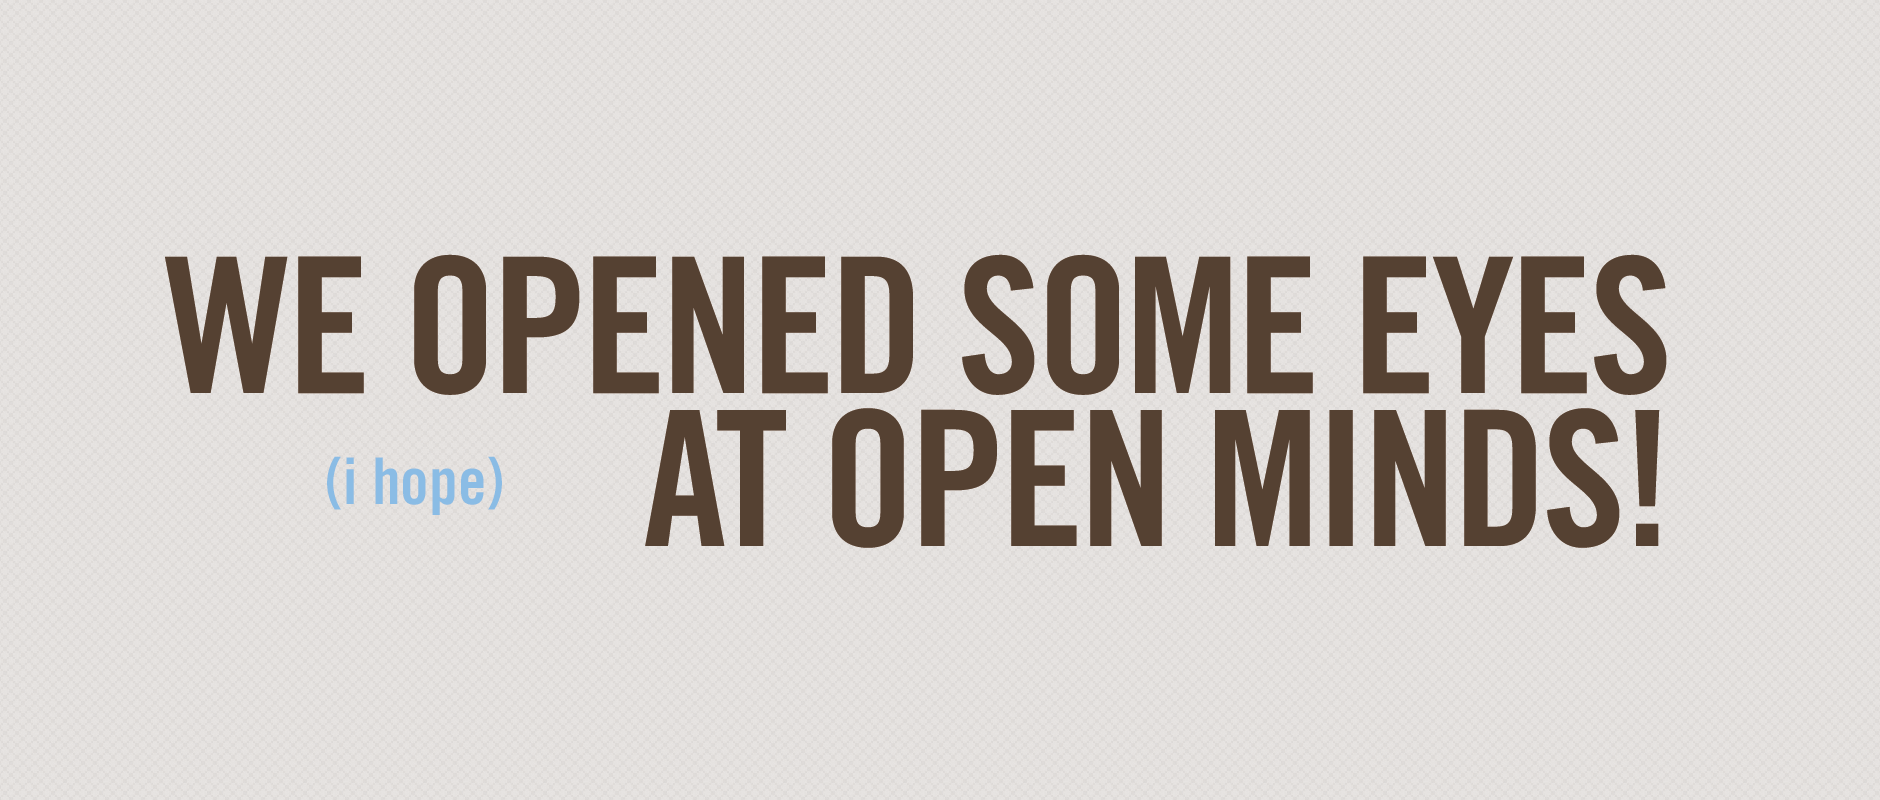 Open Minds 2014 Blog by designRoom Creative